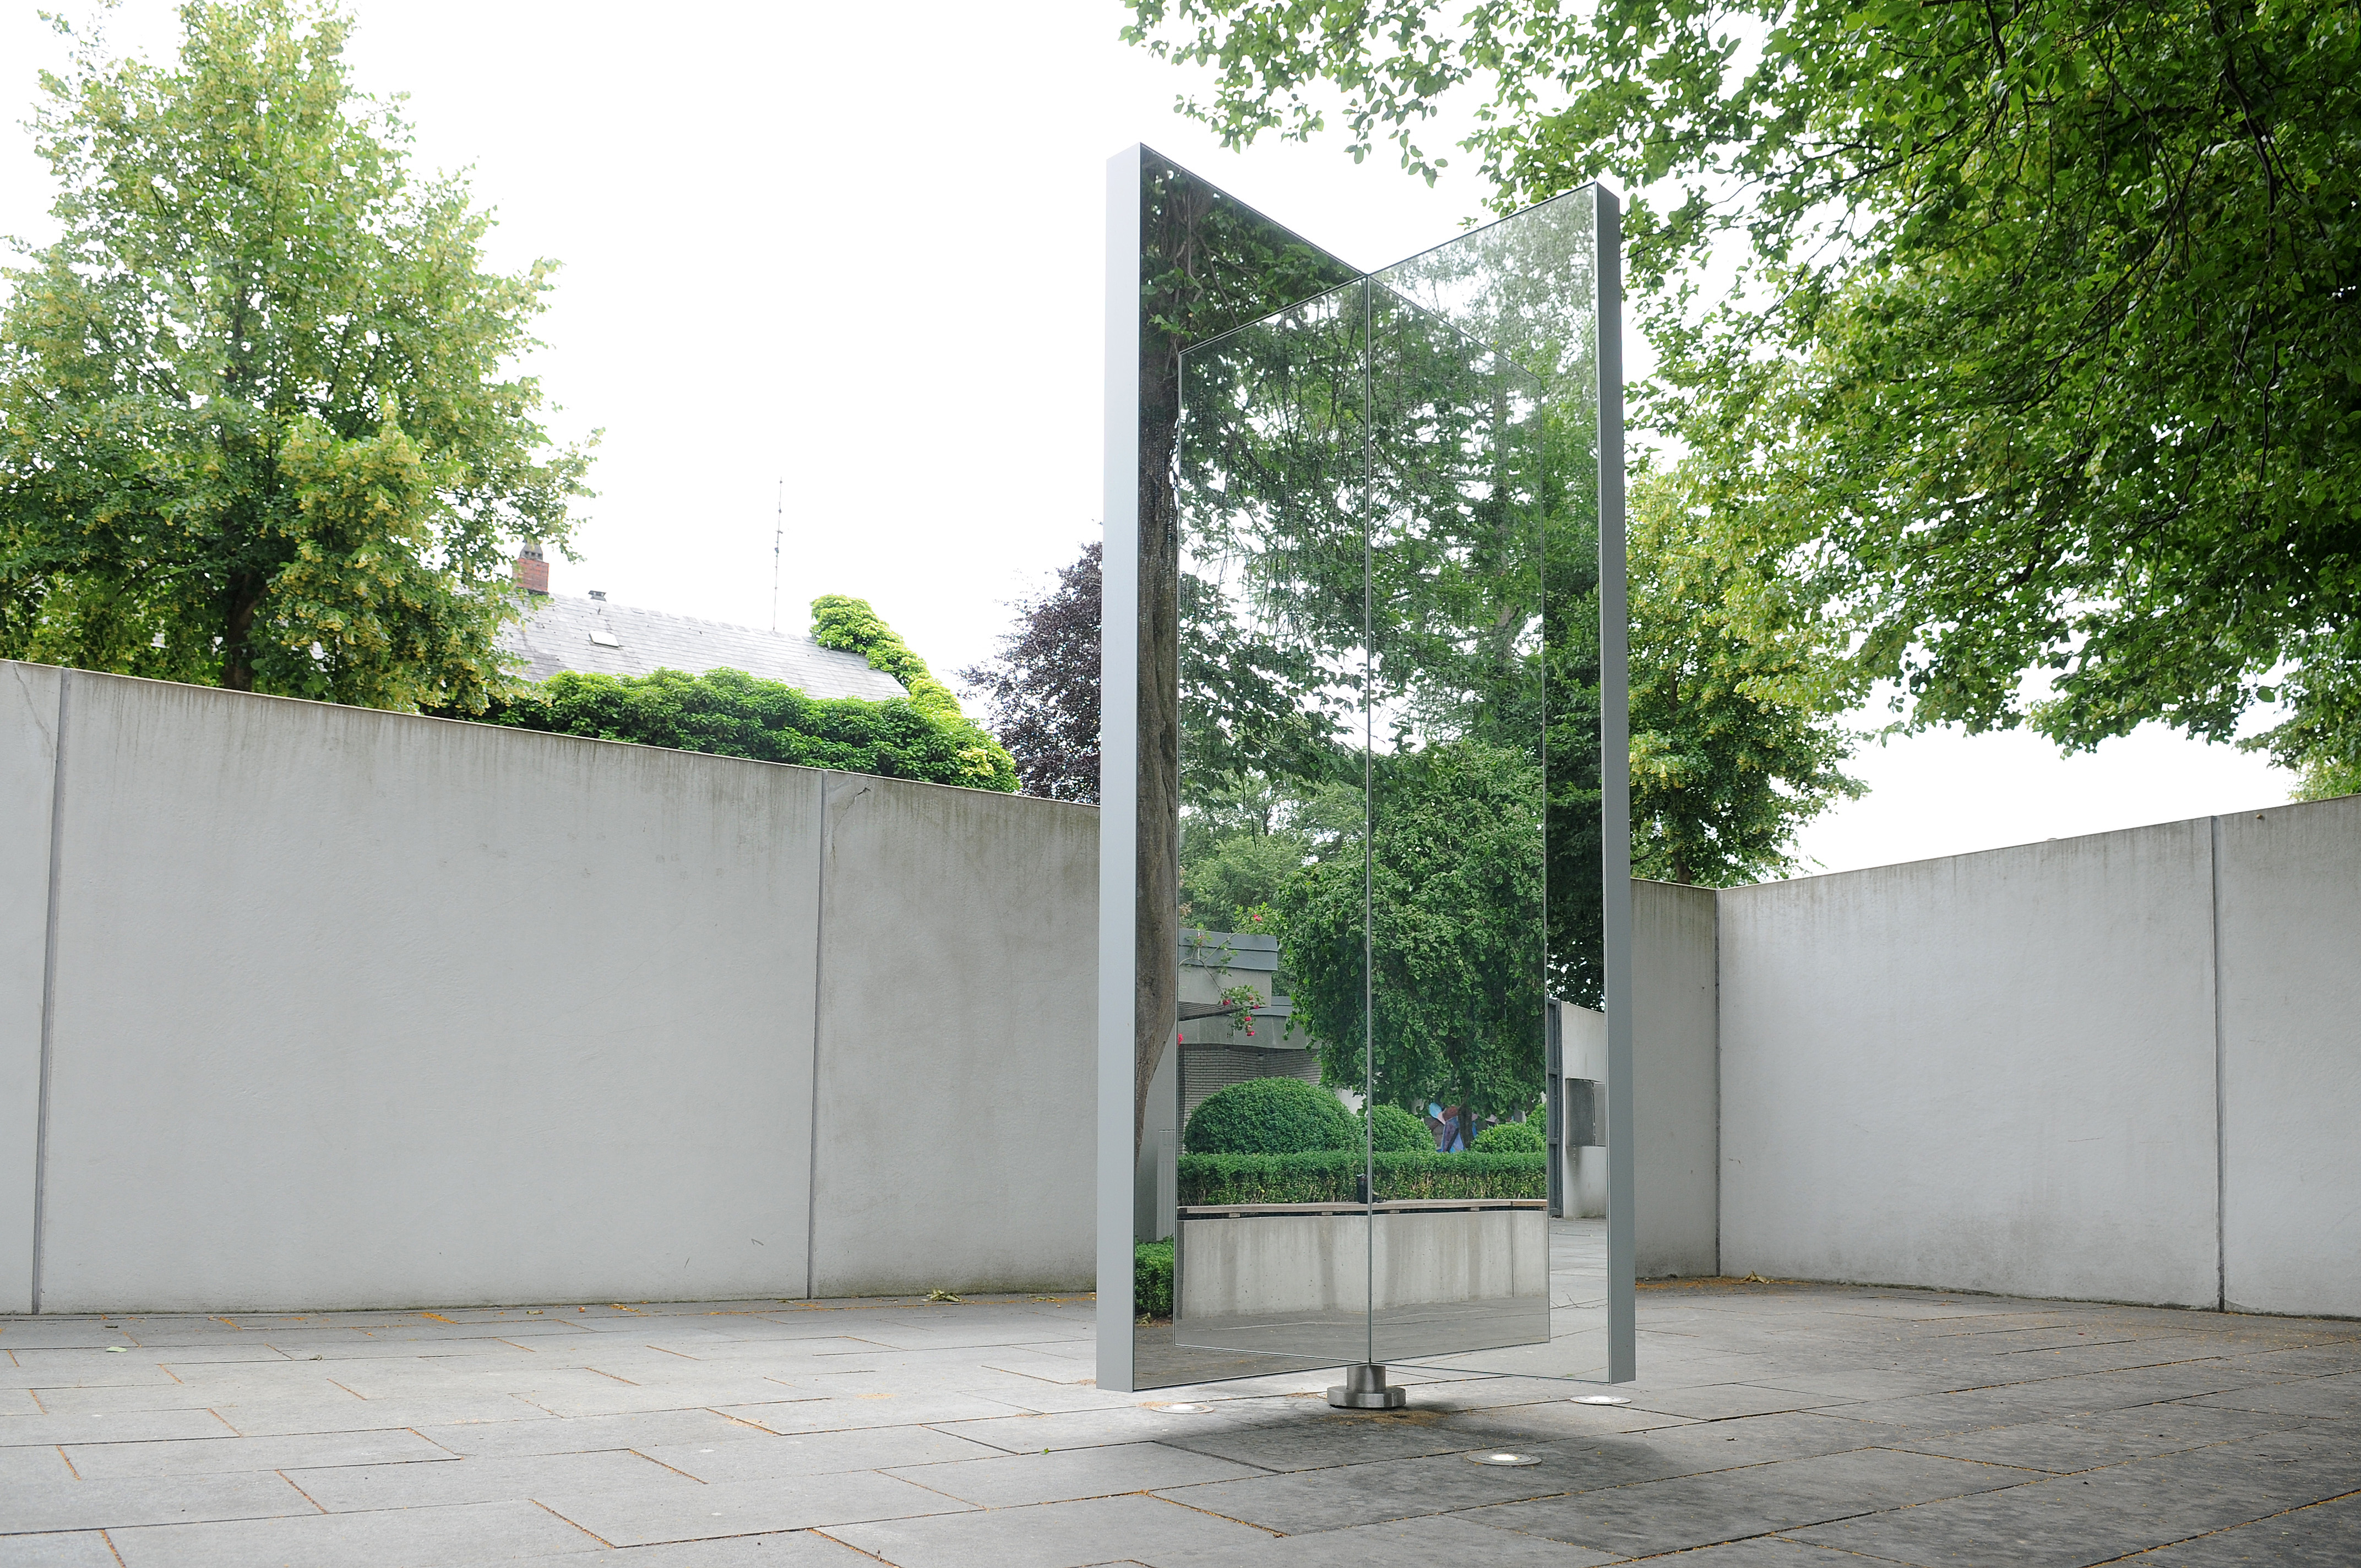 rotating_mirror_rotating, Neumünster, 2018 / © Archive Mischa Kuball, Düsseldorf / Photo: Jens Sauerbrey